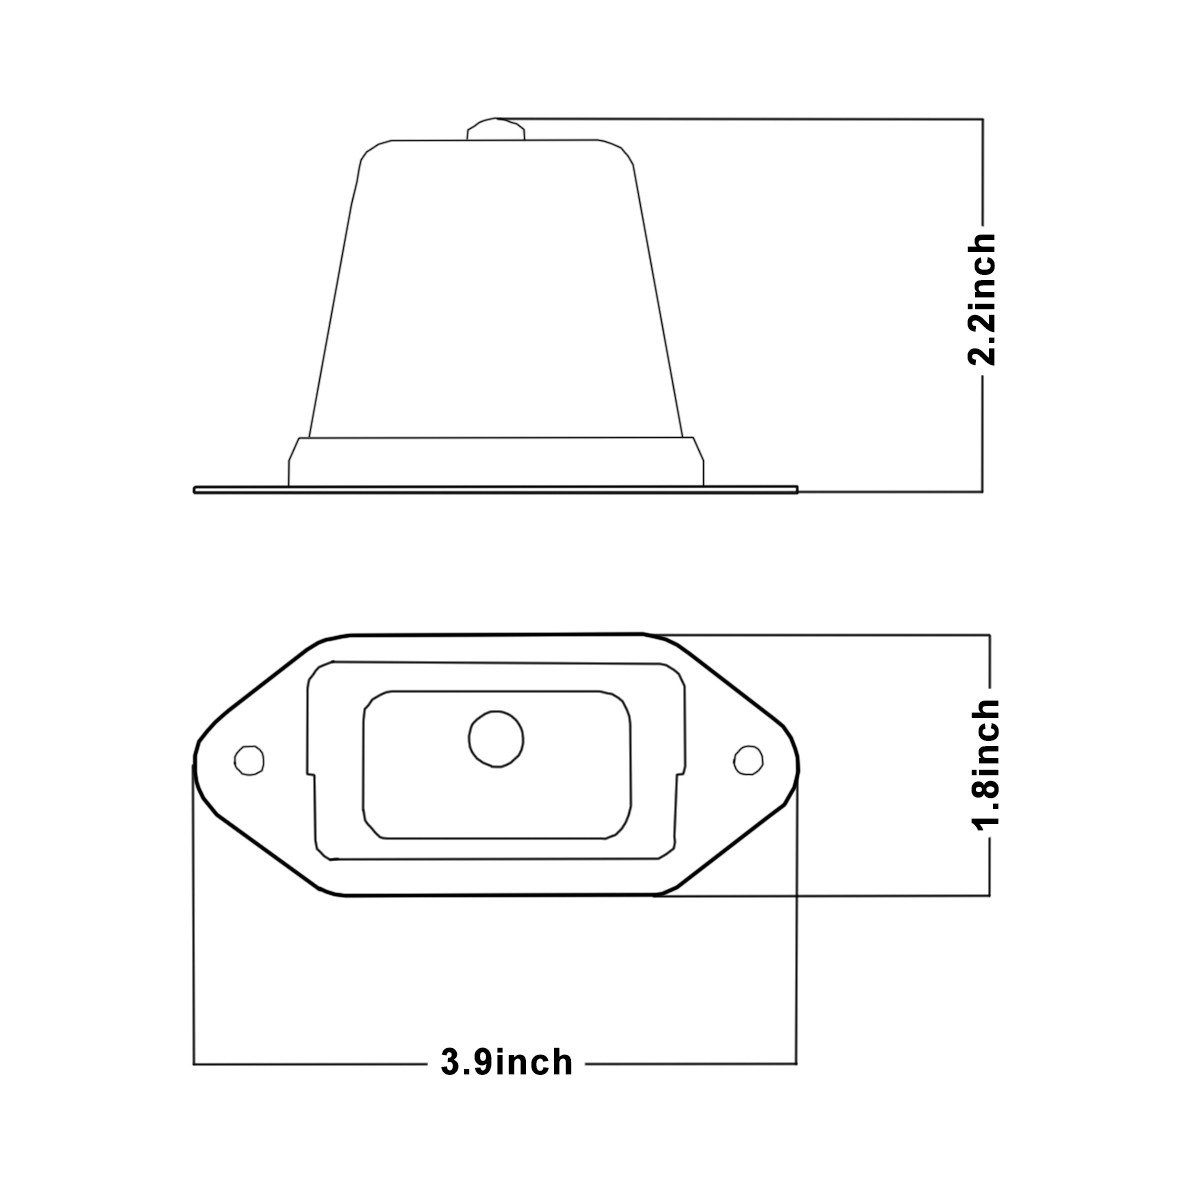 Waterproof Convenience Courtesy Light for Trailers Trucks /& Boats License Tags RV OTTOSUN 1pc License Plate Light Heavy Duty Gray Housing SAE//DOT Certified